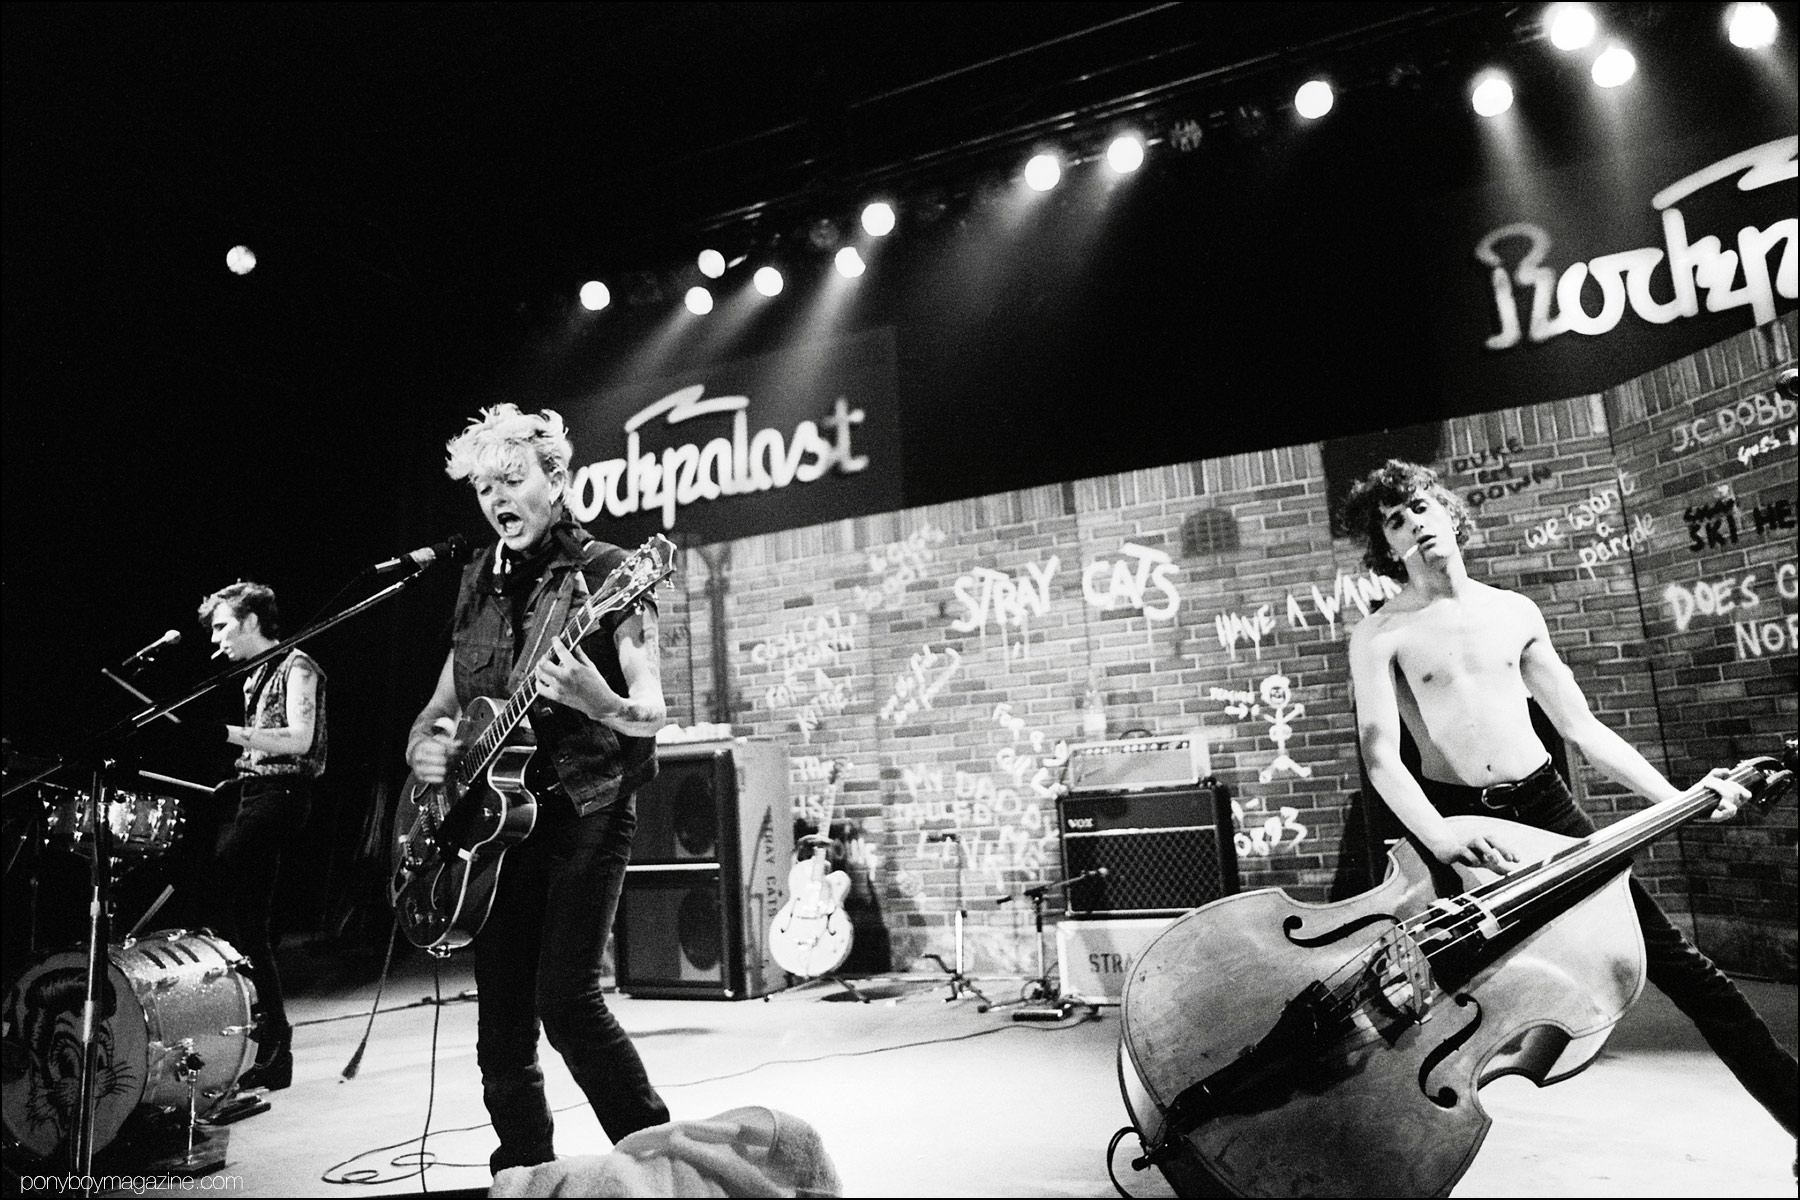 Neo-rockabilly band Stray Cats, onstage in Germany. Photographed by Manfred Becker. Ponyboy magazine NY.